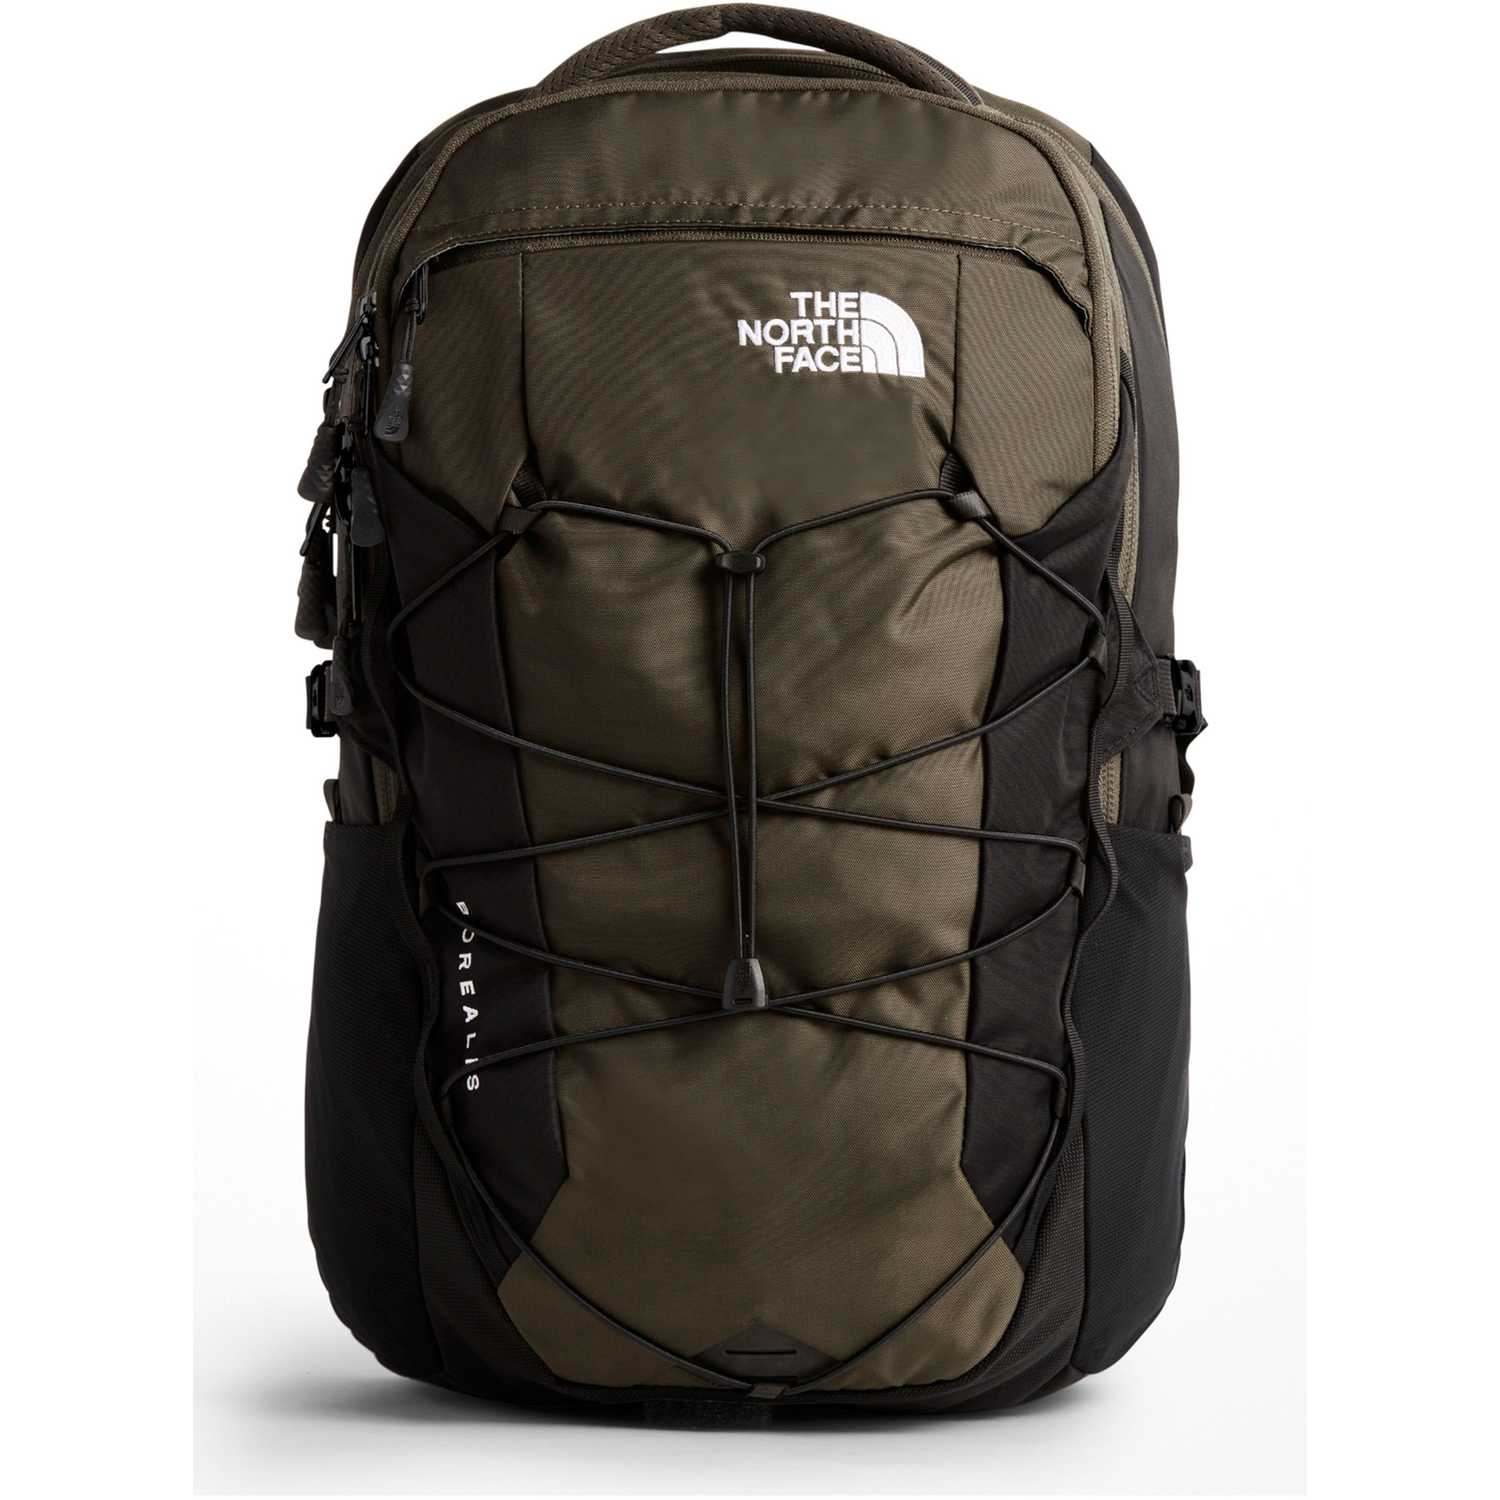 Cartucheras de Niño The North Face Negro borealis